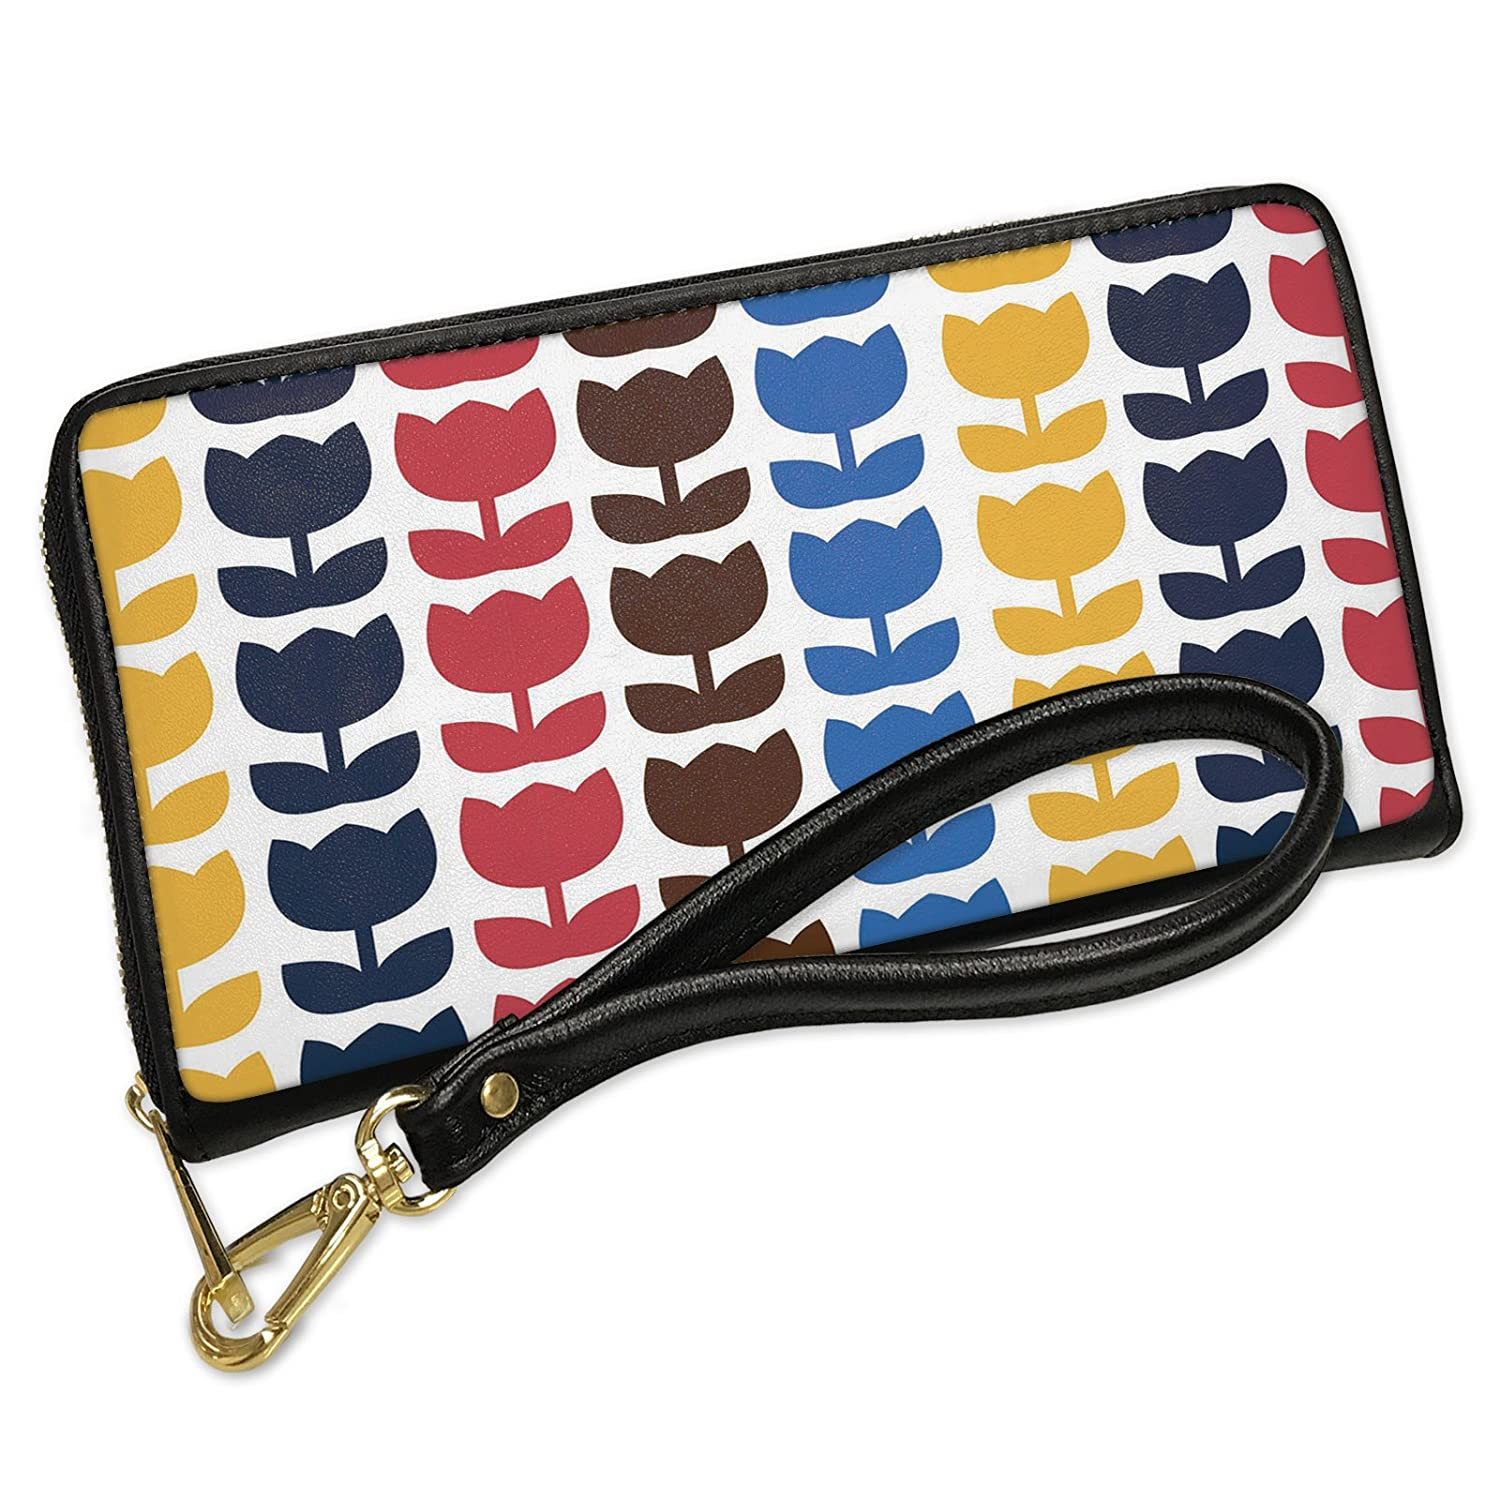 Wallet Clutch Pattern Retro Tulips Multicolored Large with Removable  Wristlet Strap Neonblond d87ed4bcfb6e1